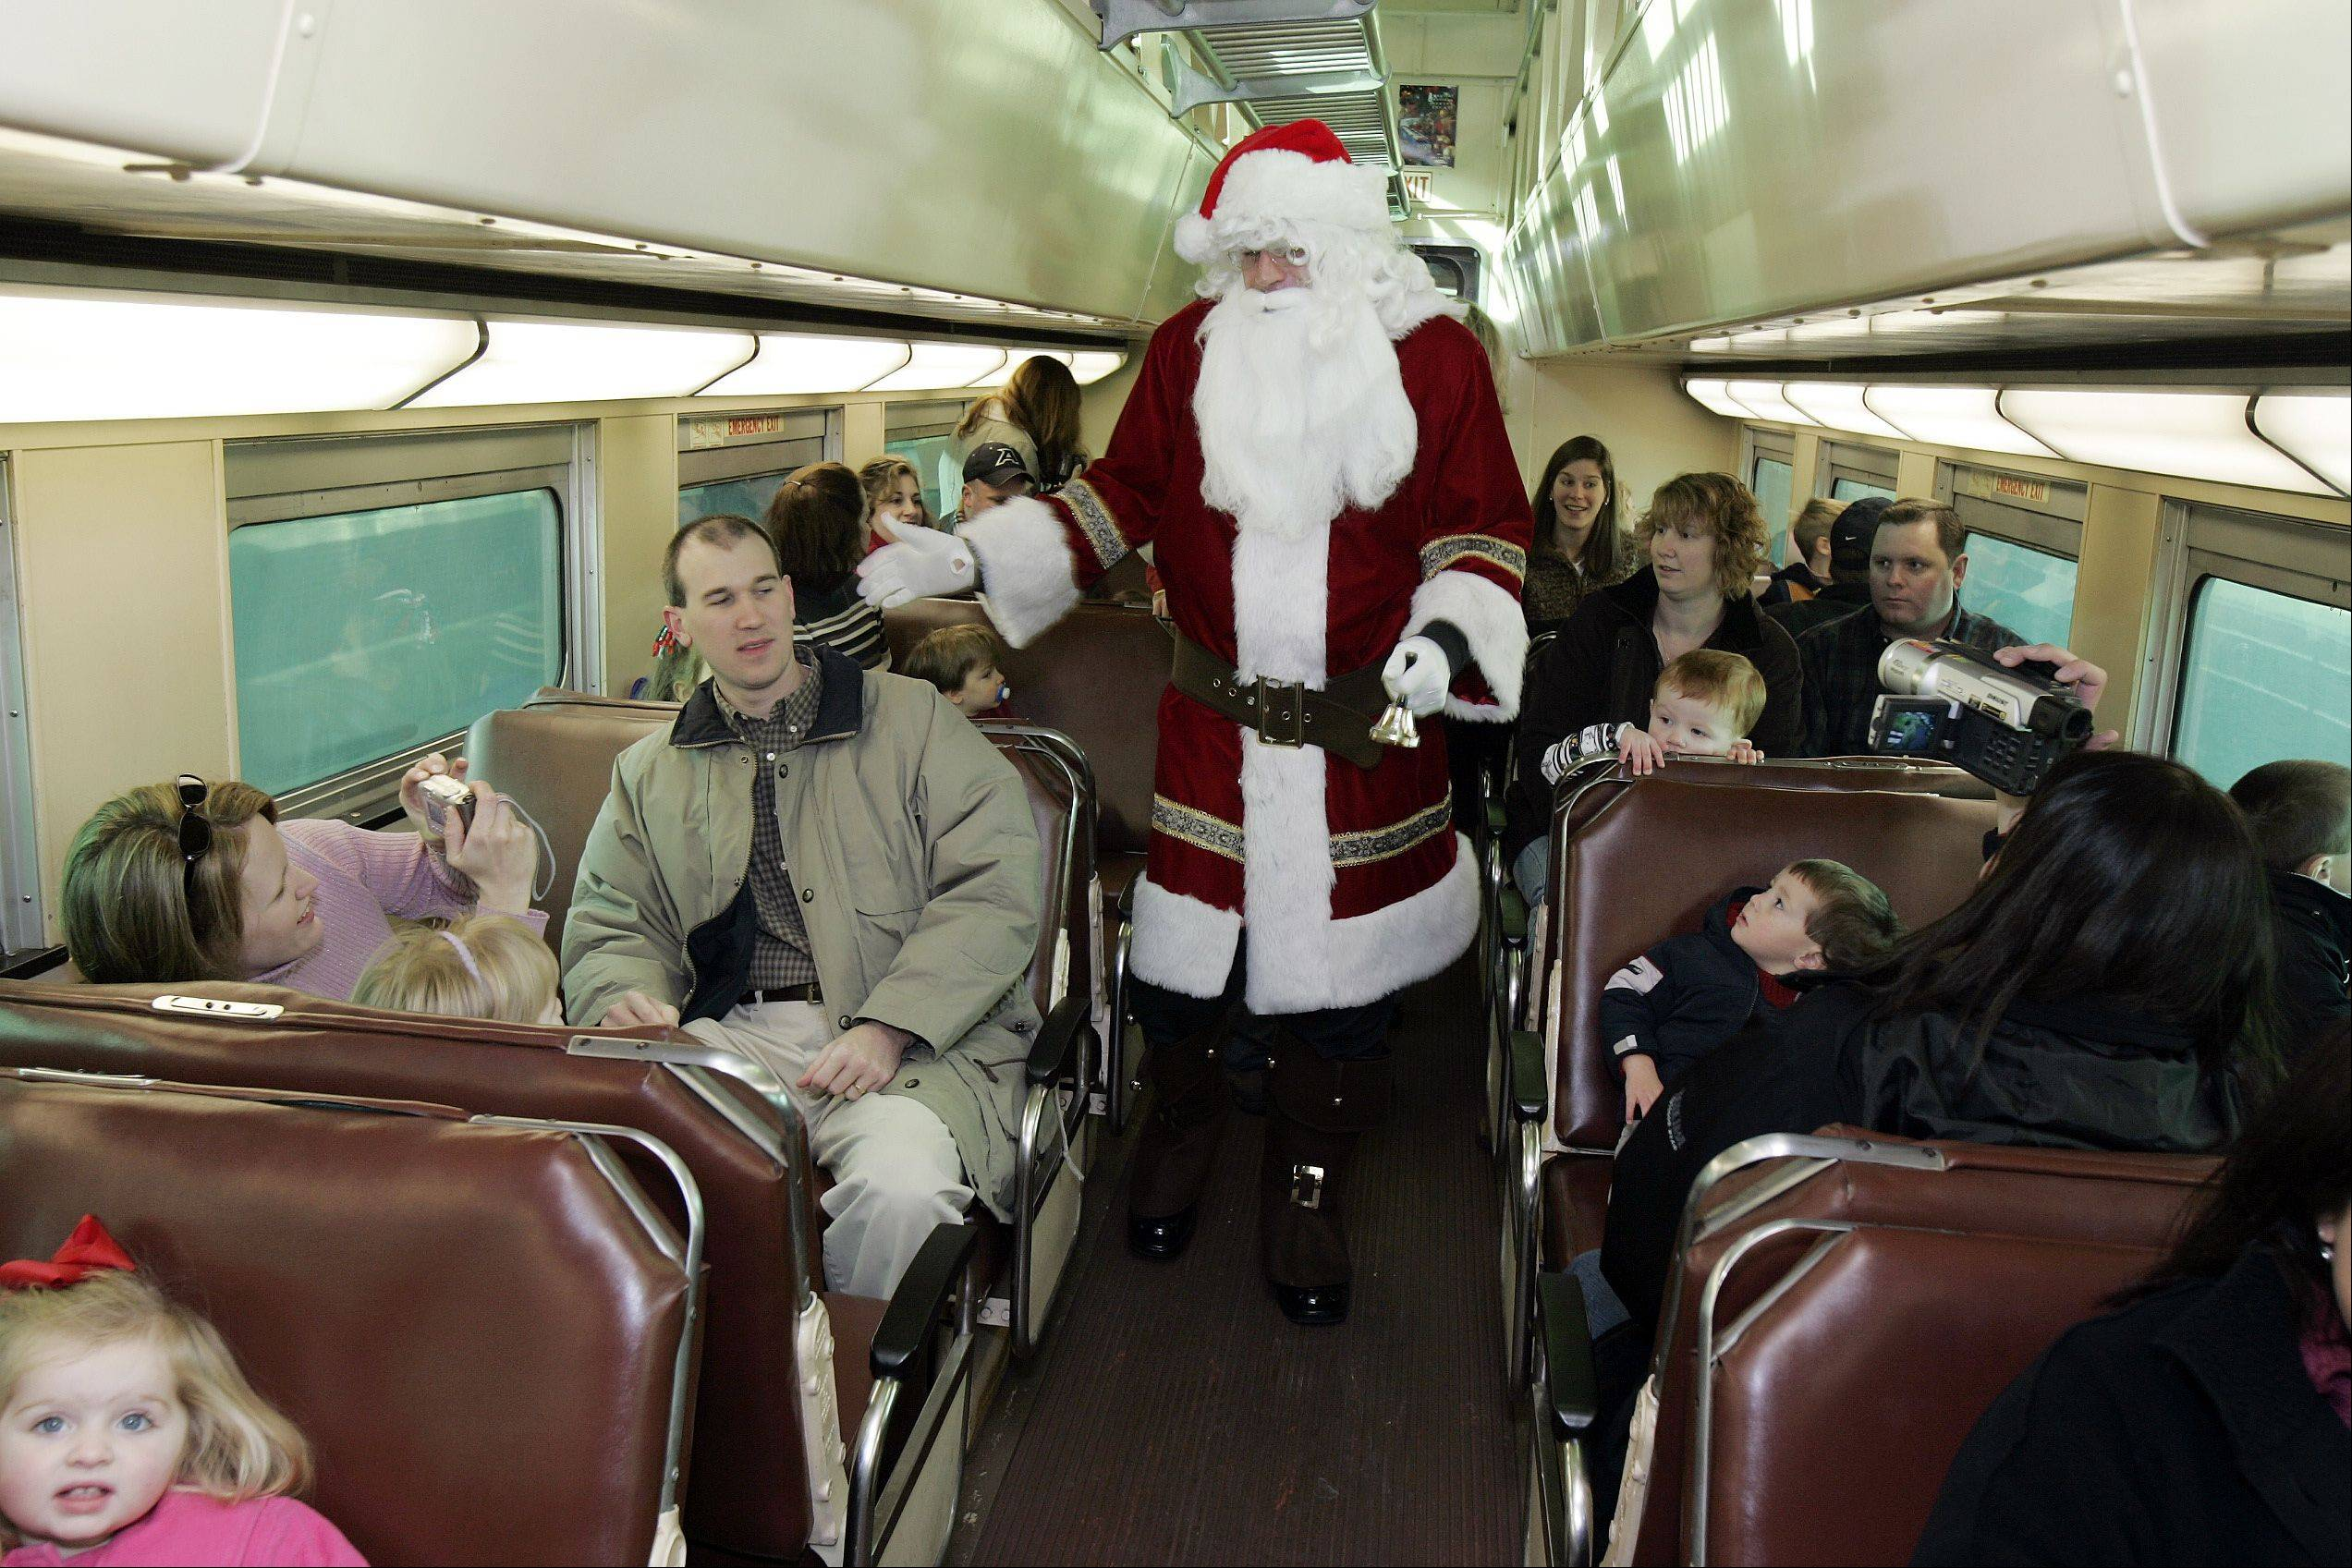 Rising costs and declining interest has forced the Naperville Jaycees to cancel this year's Santa Train event.